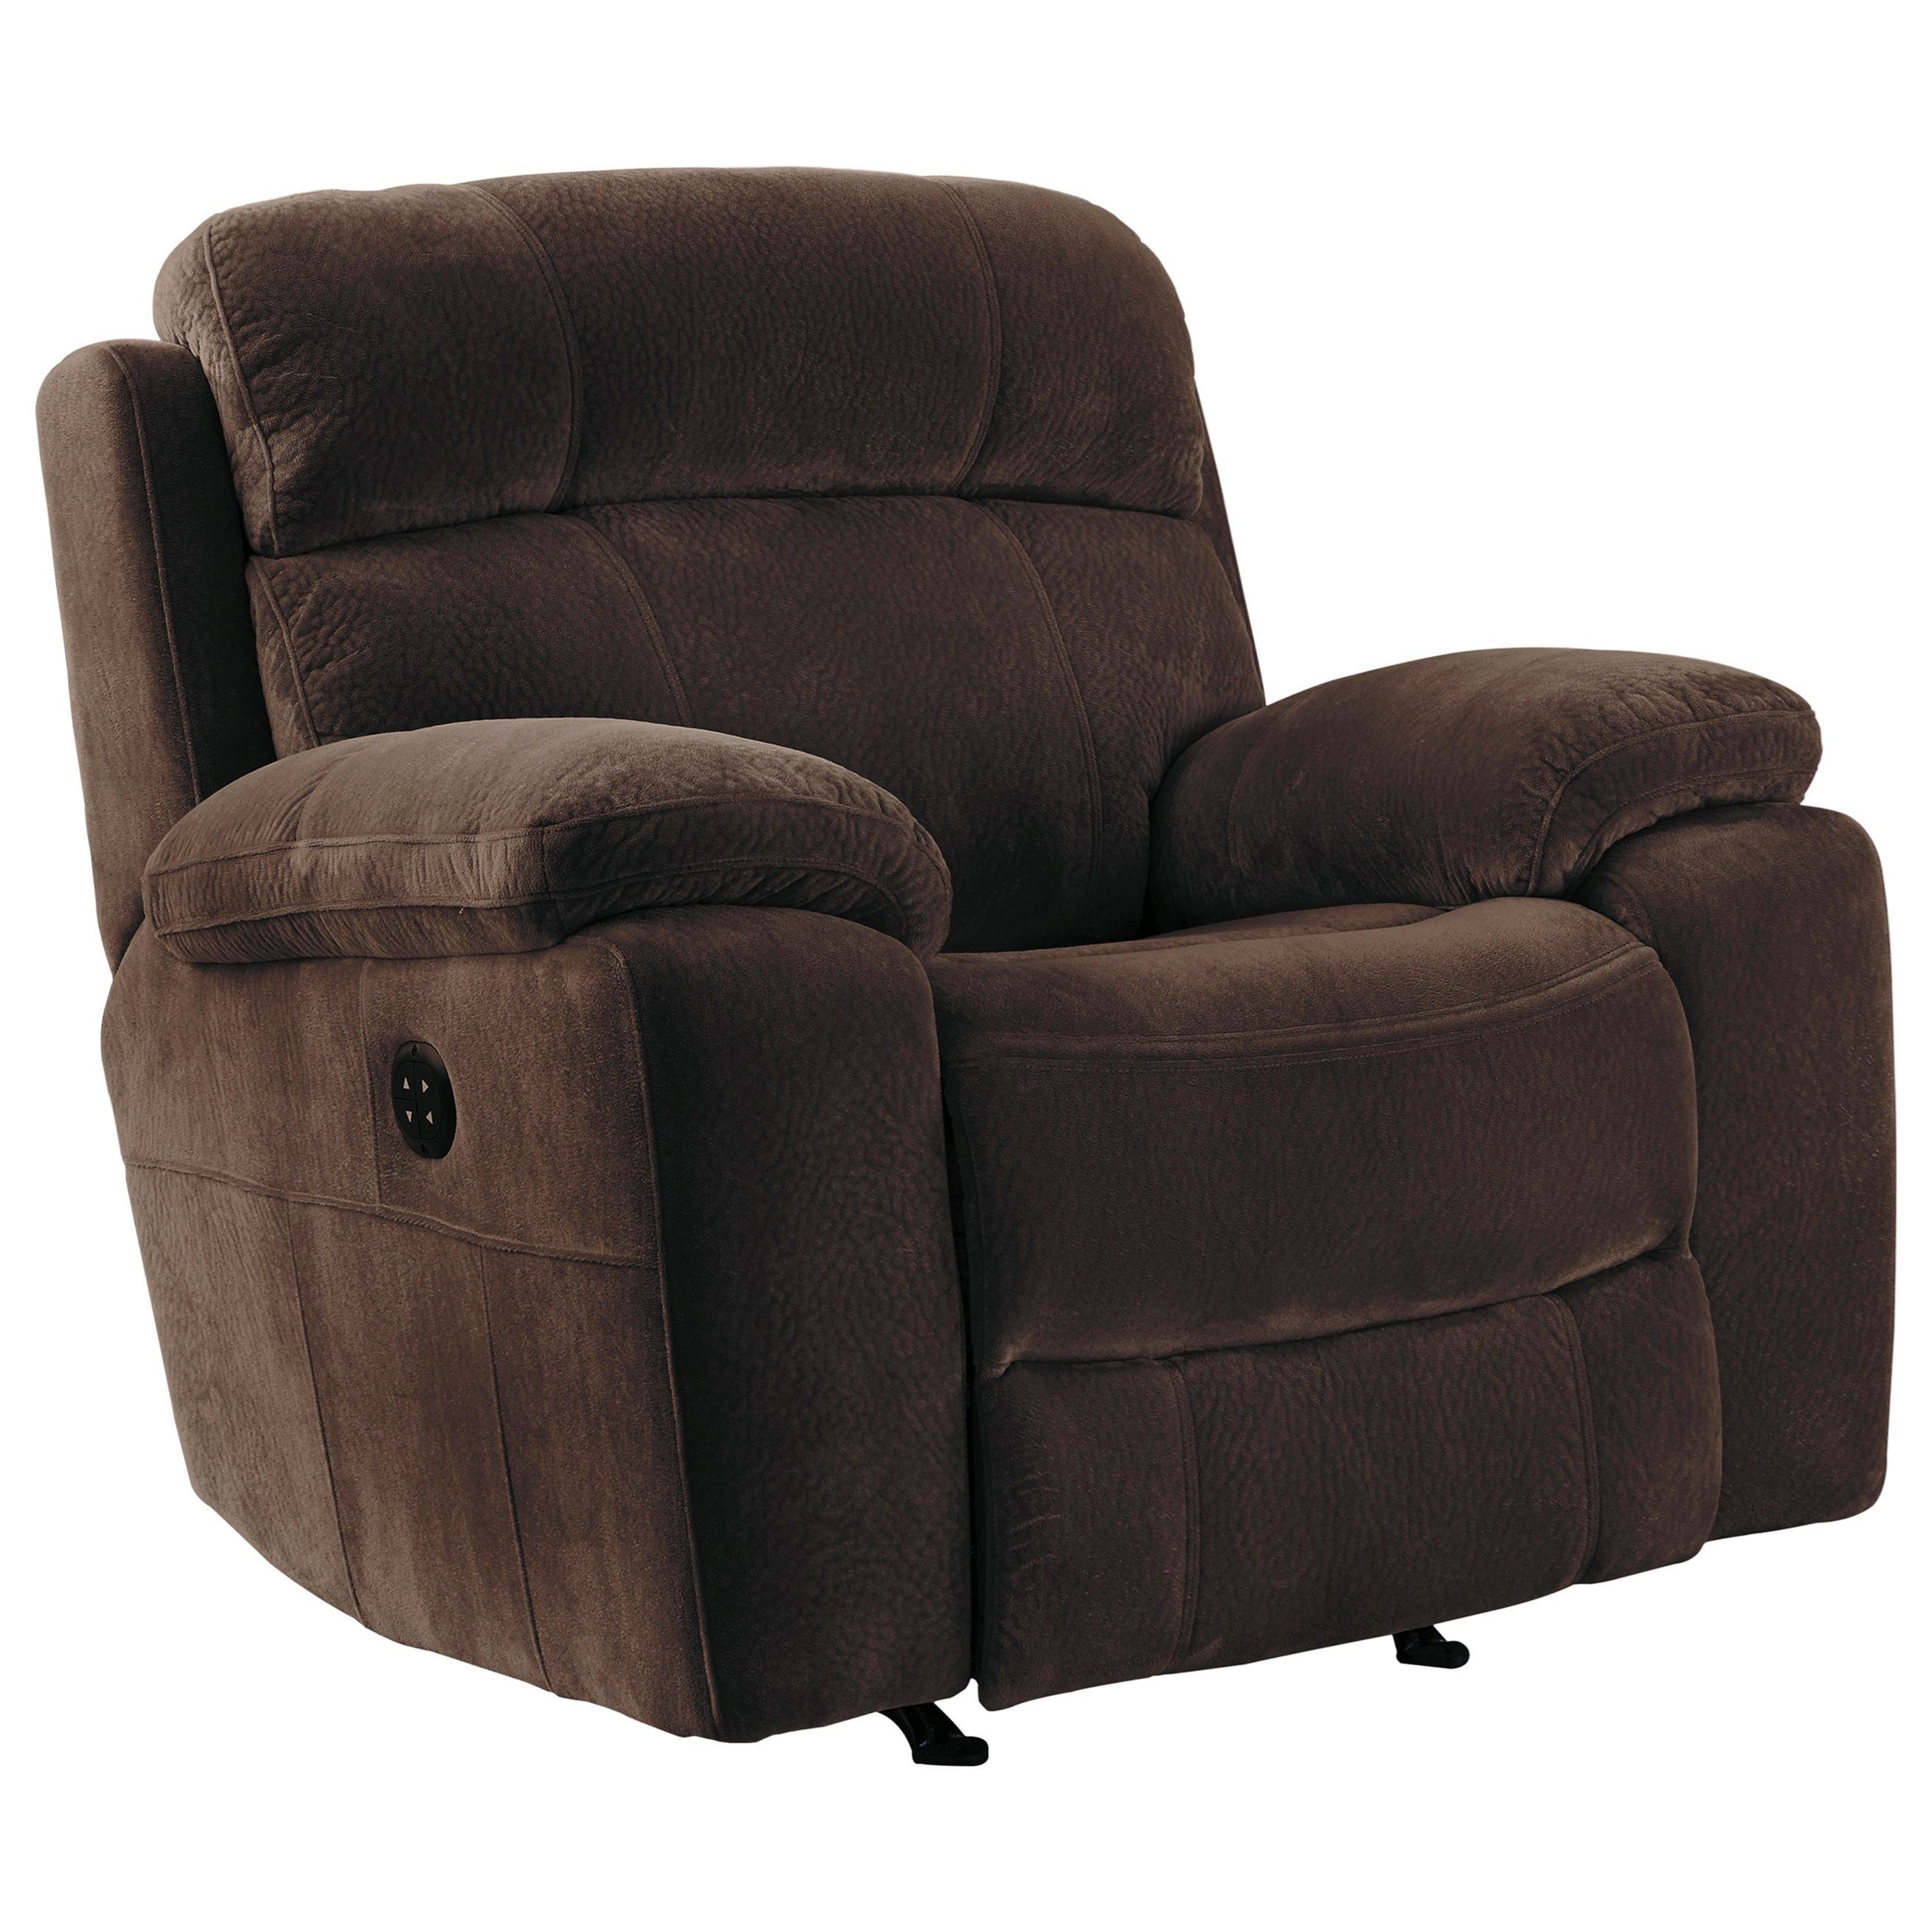 Signature Design By Ashley Uhland 6480313 Power Recliner